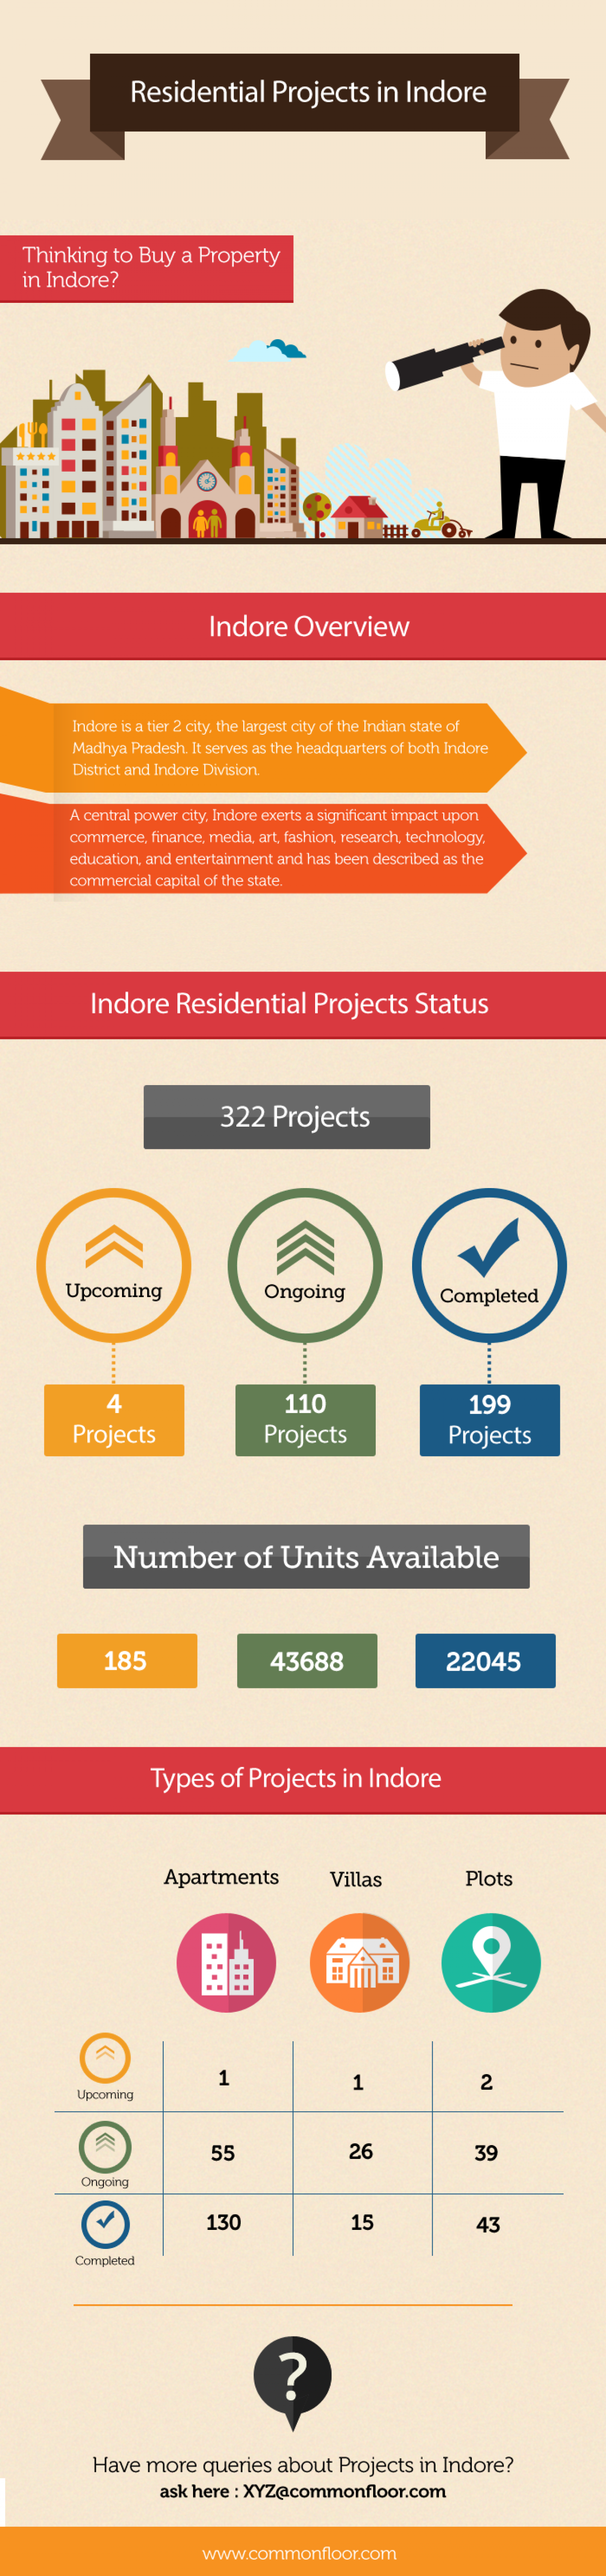 Residential Projects in Indore Infographic